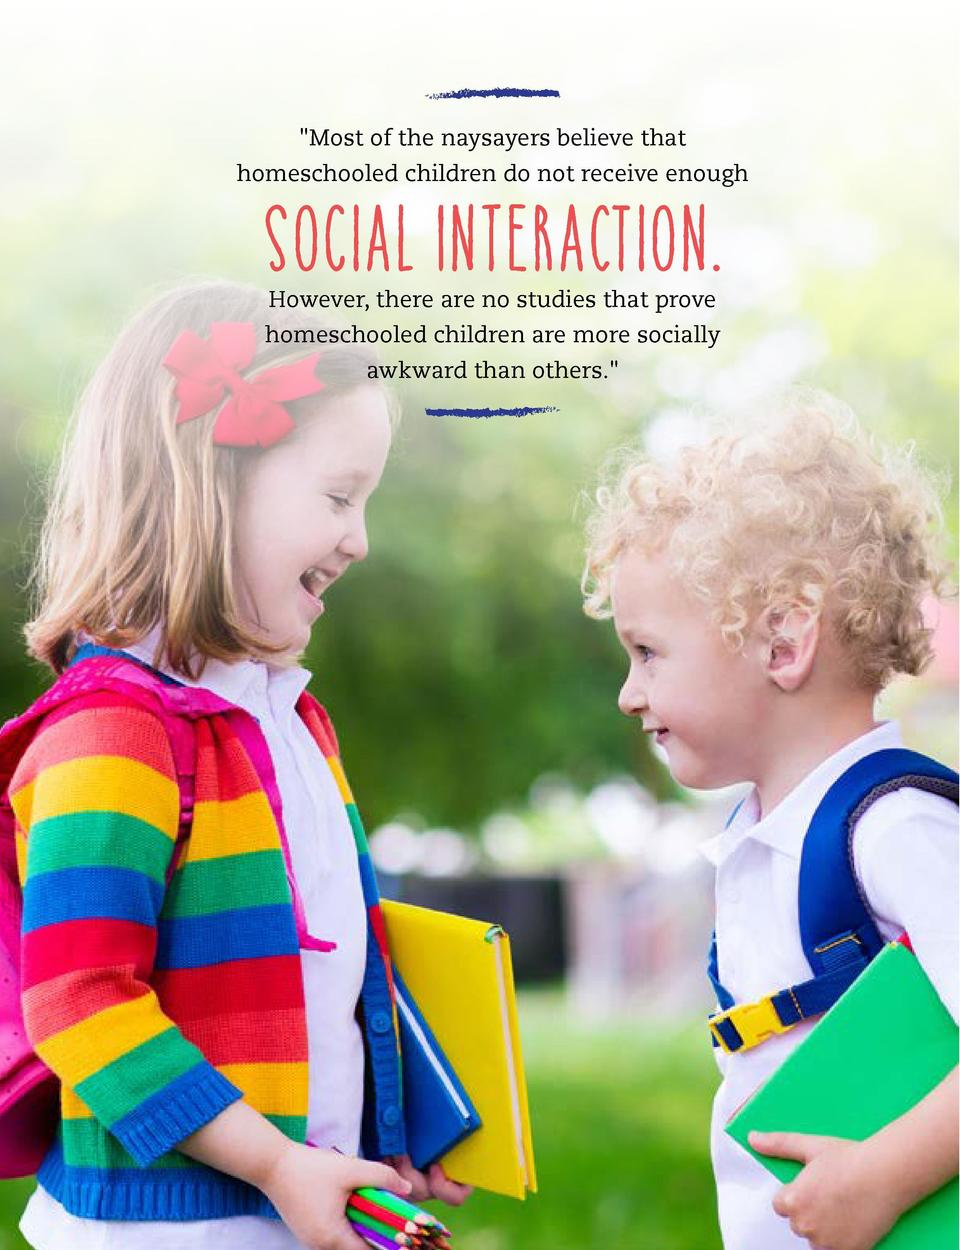 Most of the naysayers believe that homeschooled children do not receive enough  social interaction. However, there are no...